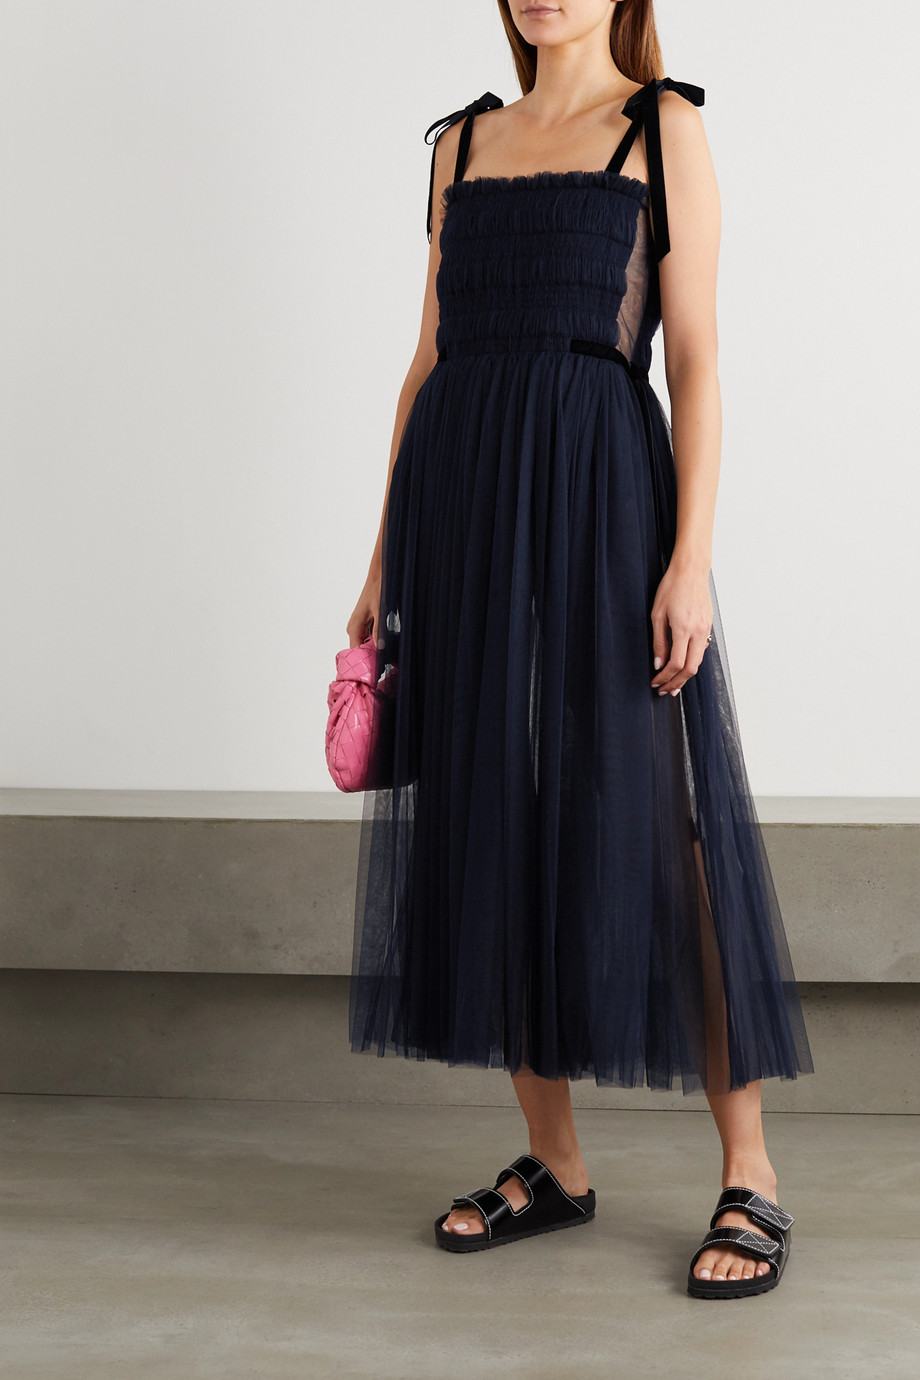 Molly Goddard Marta velvet-trimmed shirred tulle midi dress